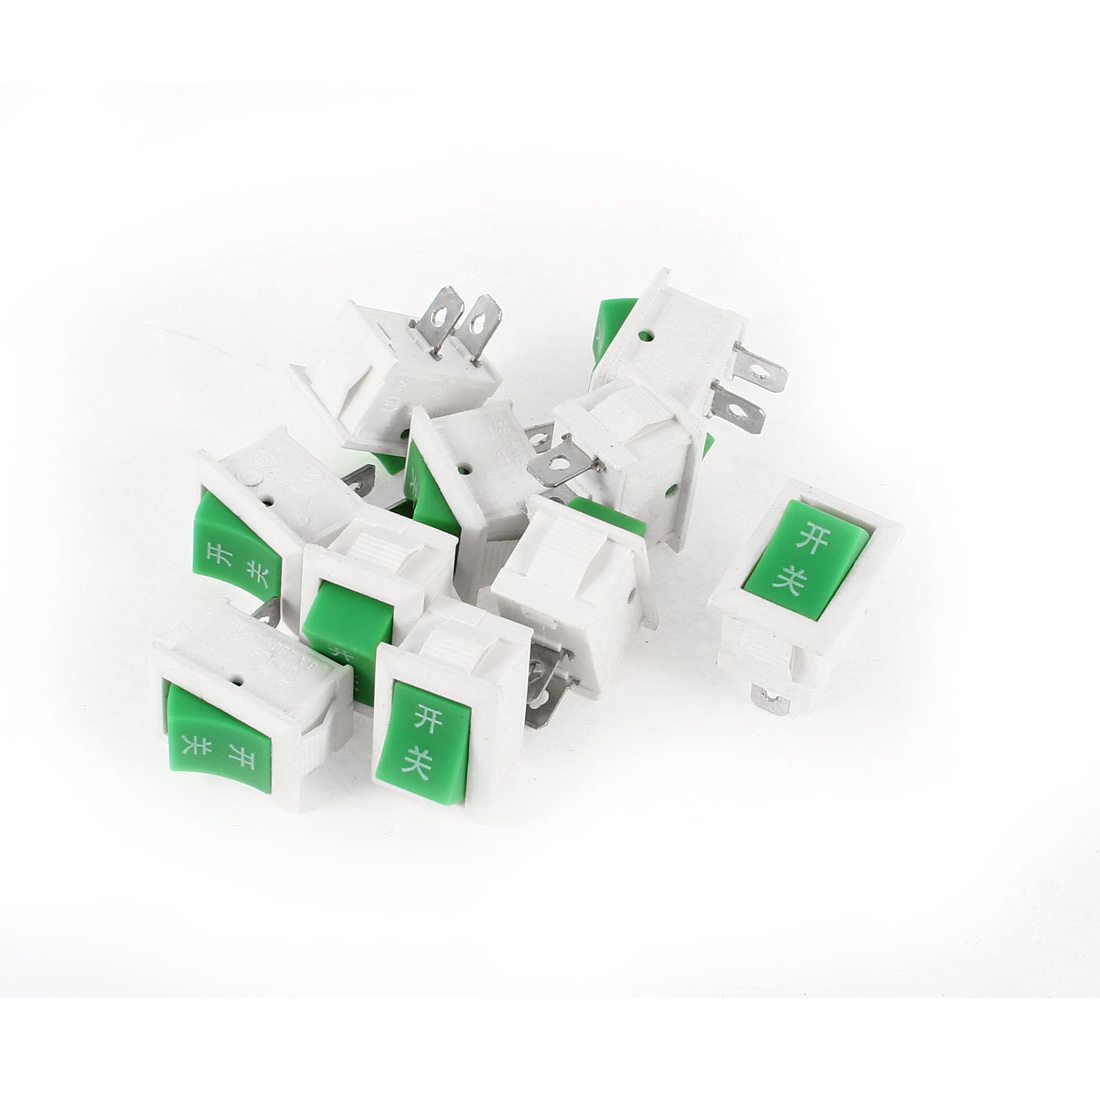 AC 250V 6A 125V 10A 2 Termials SPST ON/OFF 2 Positions Rocker Switch Green White 10Pcs